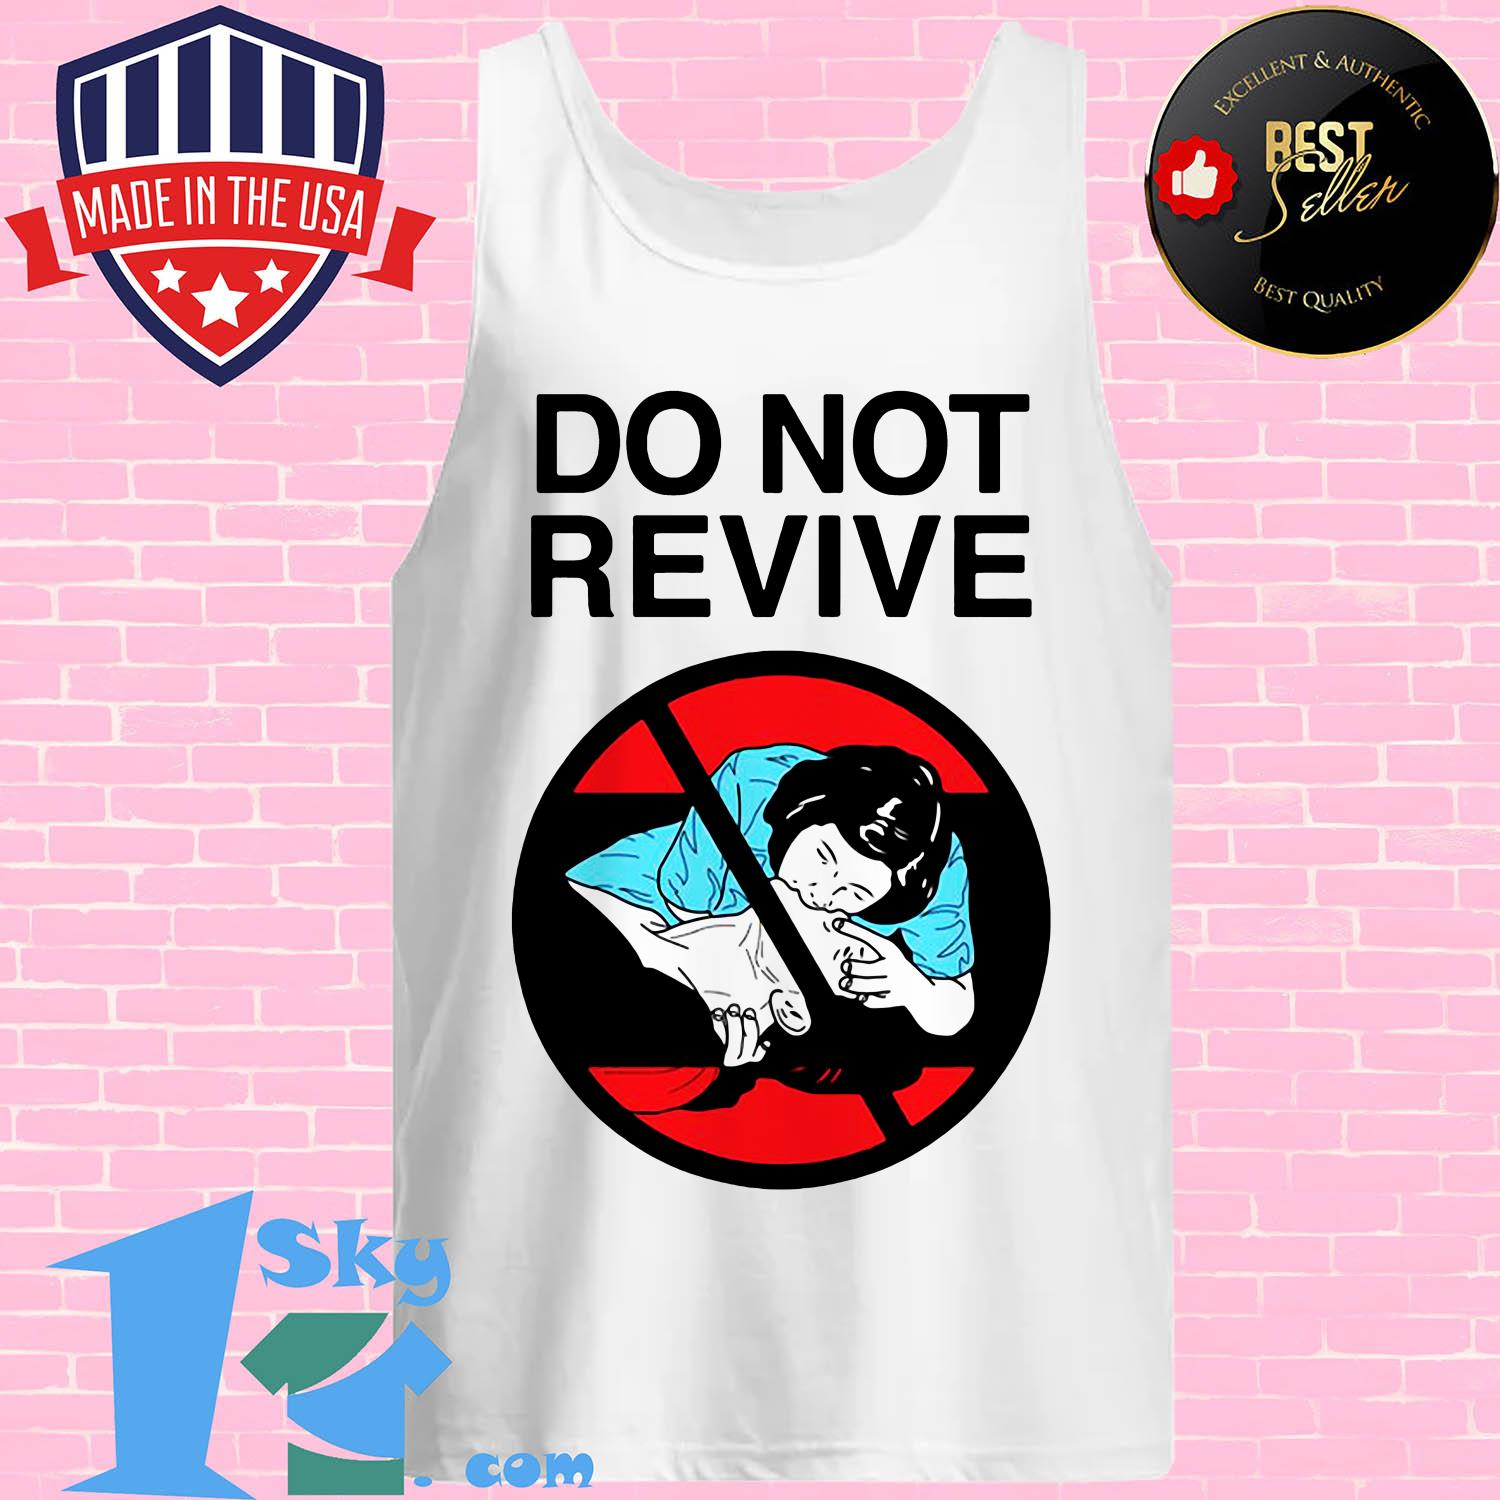 official do not revive tank top - Official Do Not Revive shirt